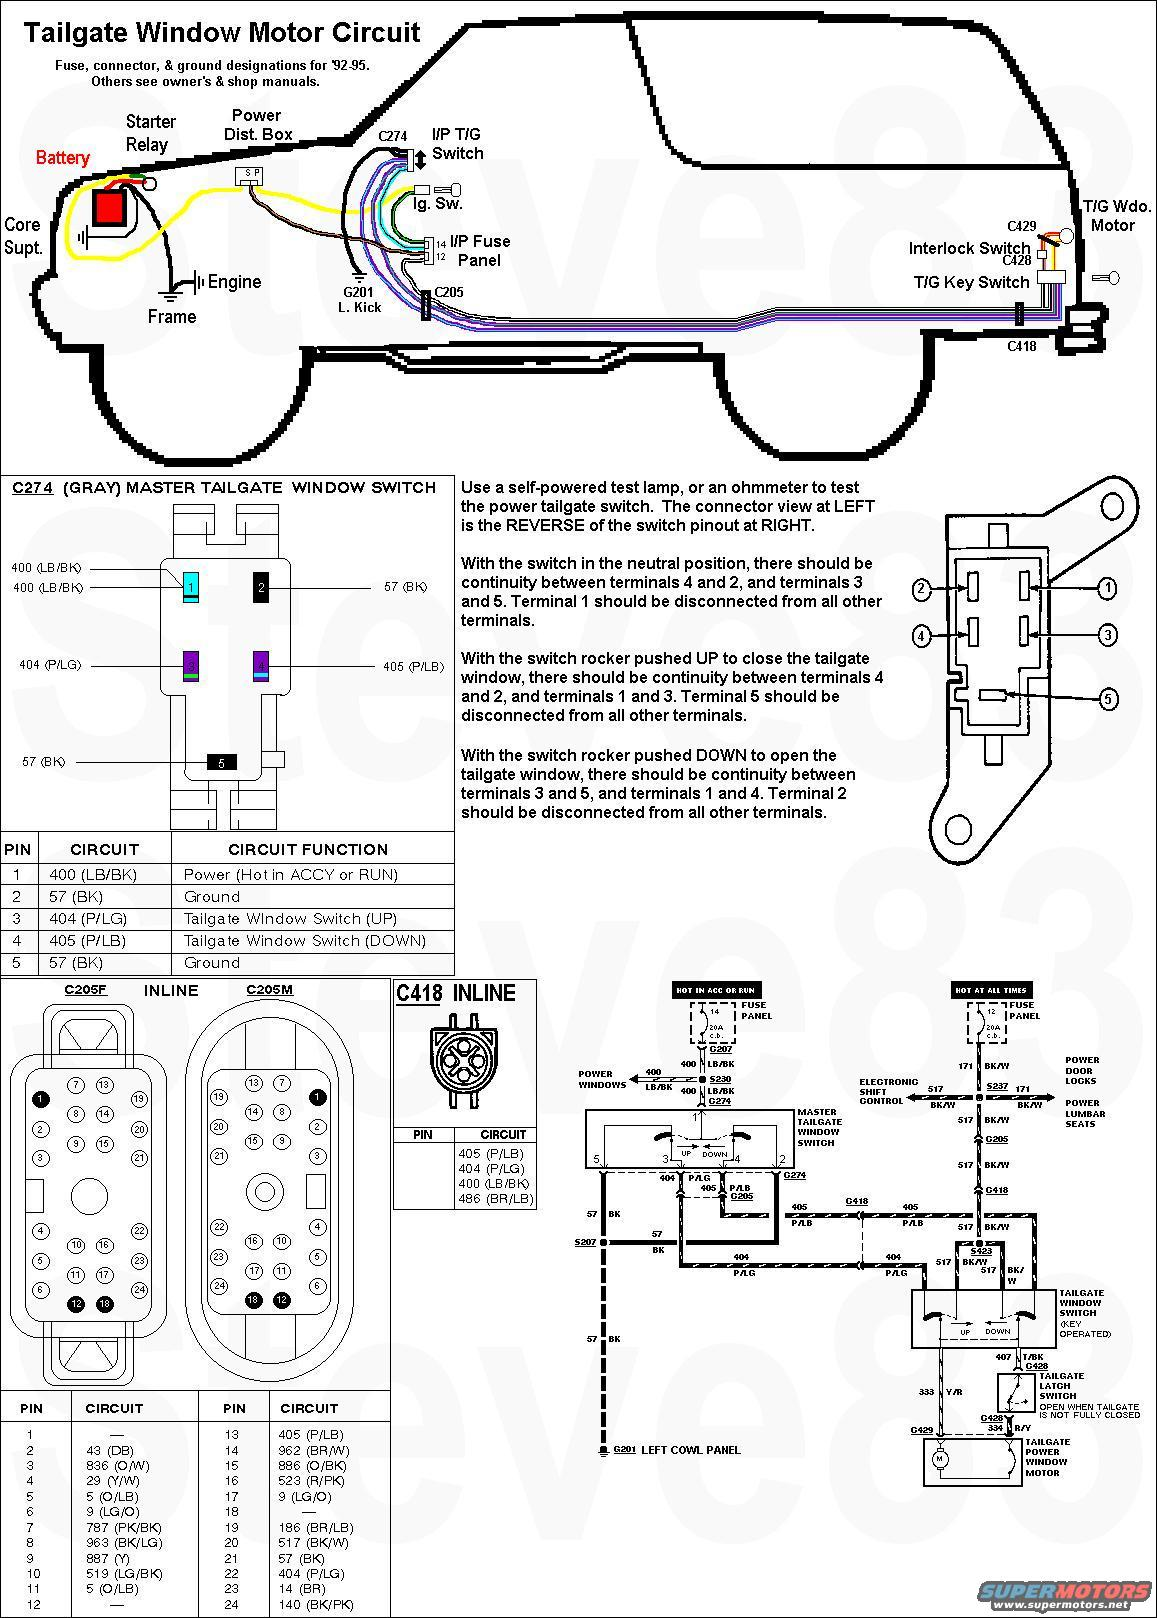 T10680422 Defoger relay diagram position honda as well Viewtopic likewise T20184013 2009 chevy malibu code p0776 moreover Location Of 2005 Impala Abs Control Module together with 97 Cavalier Alternator Wiring For Fuse. on 2003 honda civic charging system wiring diagram